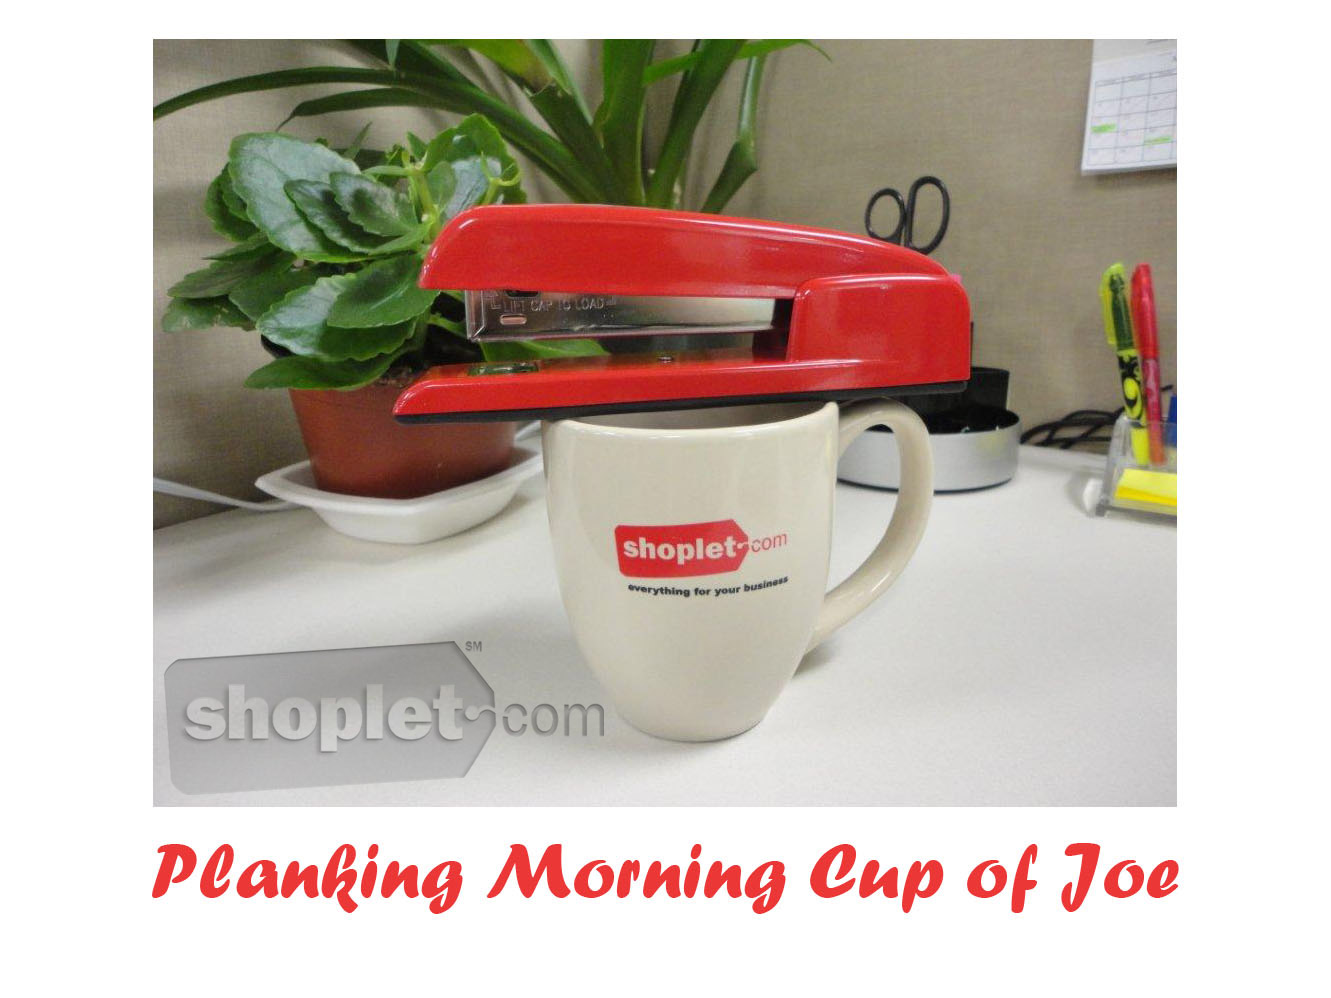 Shoplet-Planking-Stapler-Coffee-Cup